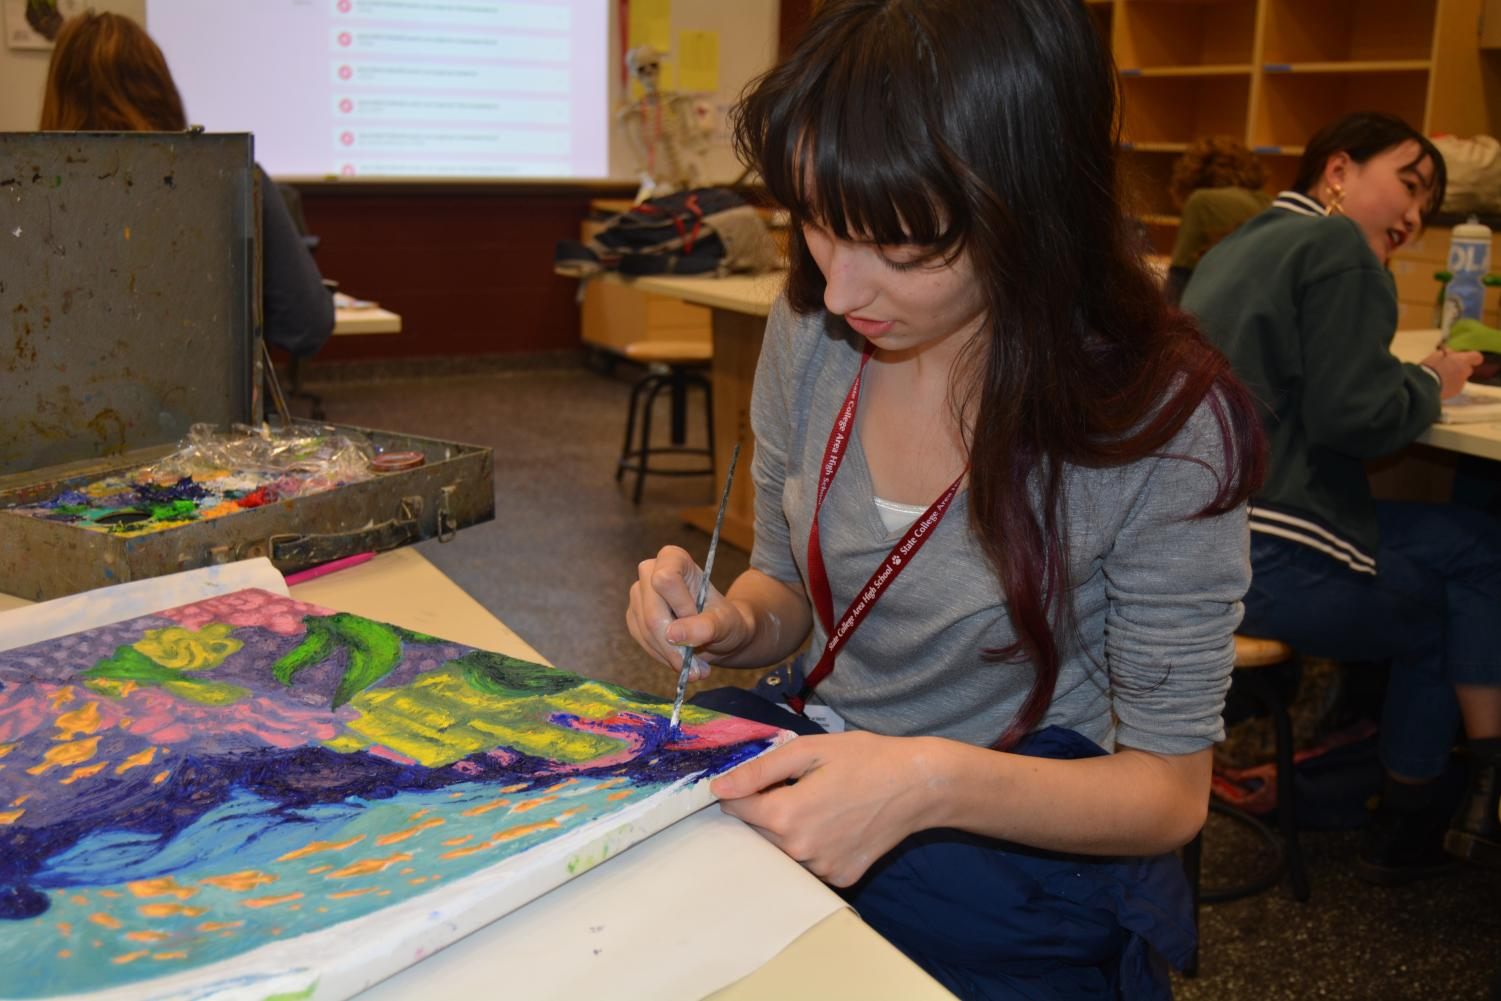 """Madeline Einfalt, junior, works on a painting during her master studio class in the new art space. Einfalt shares a reason why she likes the new rooms. """"I like the space the new rooms have,"""" Einfalt said."""